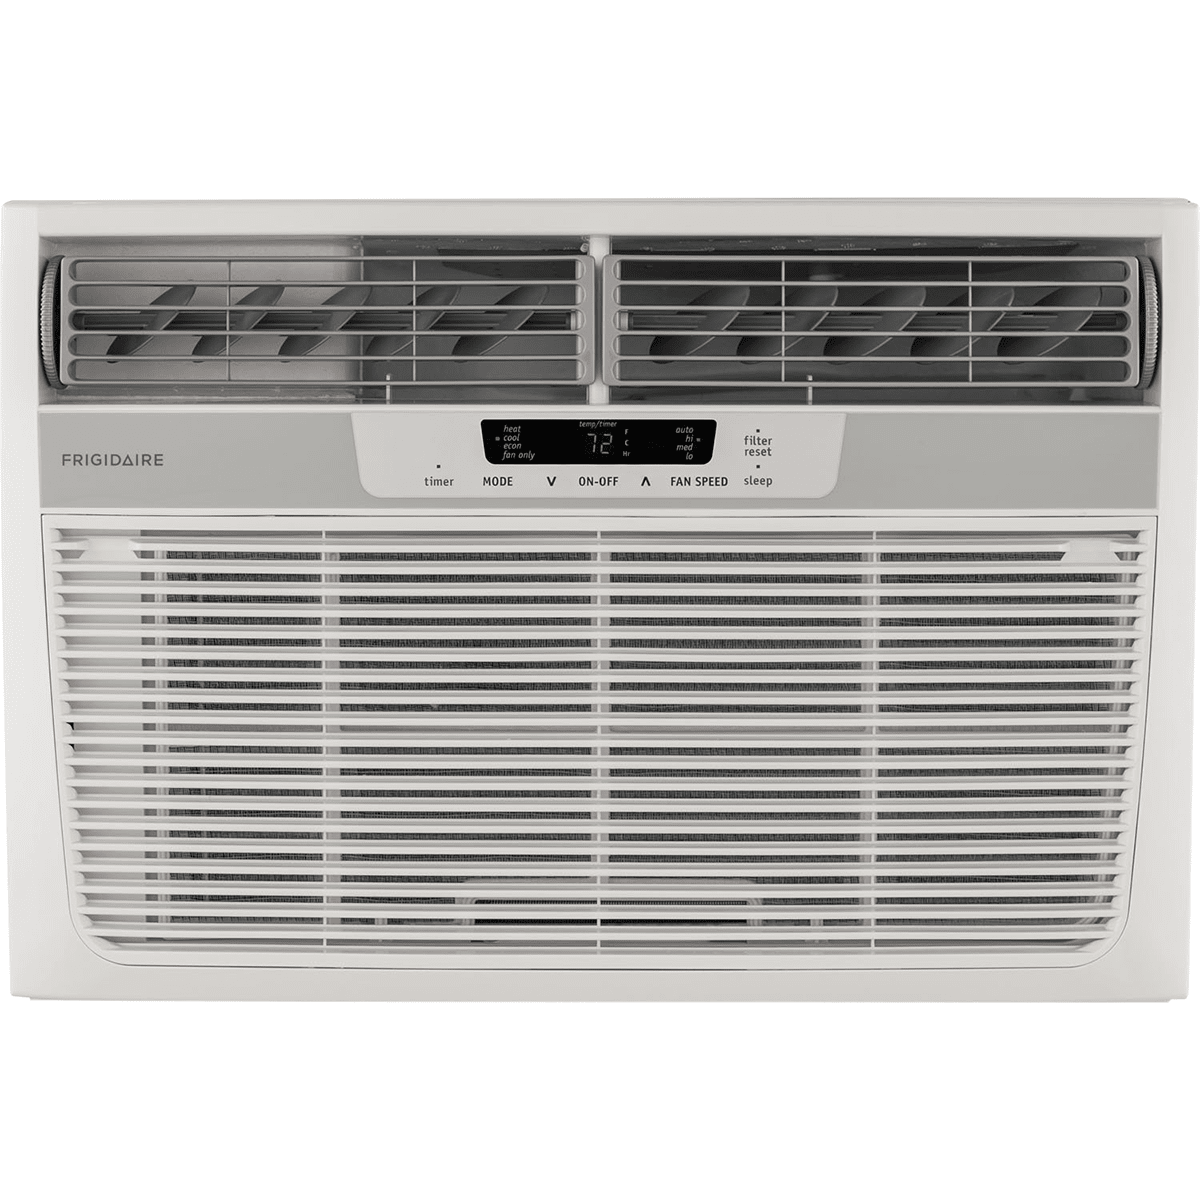 Frigidaire FFRH08L2R1 8,000 BTU 115 V Slide-Out Chassis Window Air Conditioner/Heat Pump with Remote